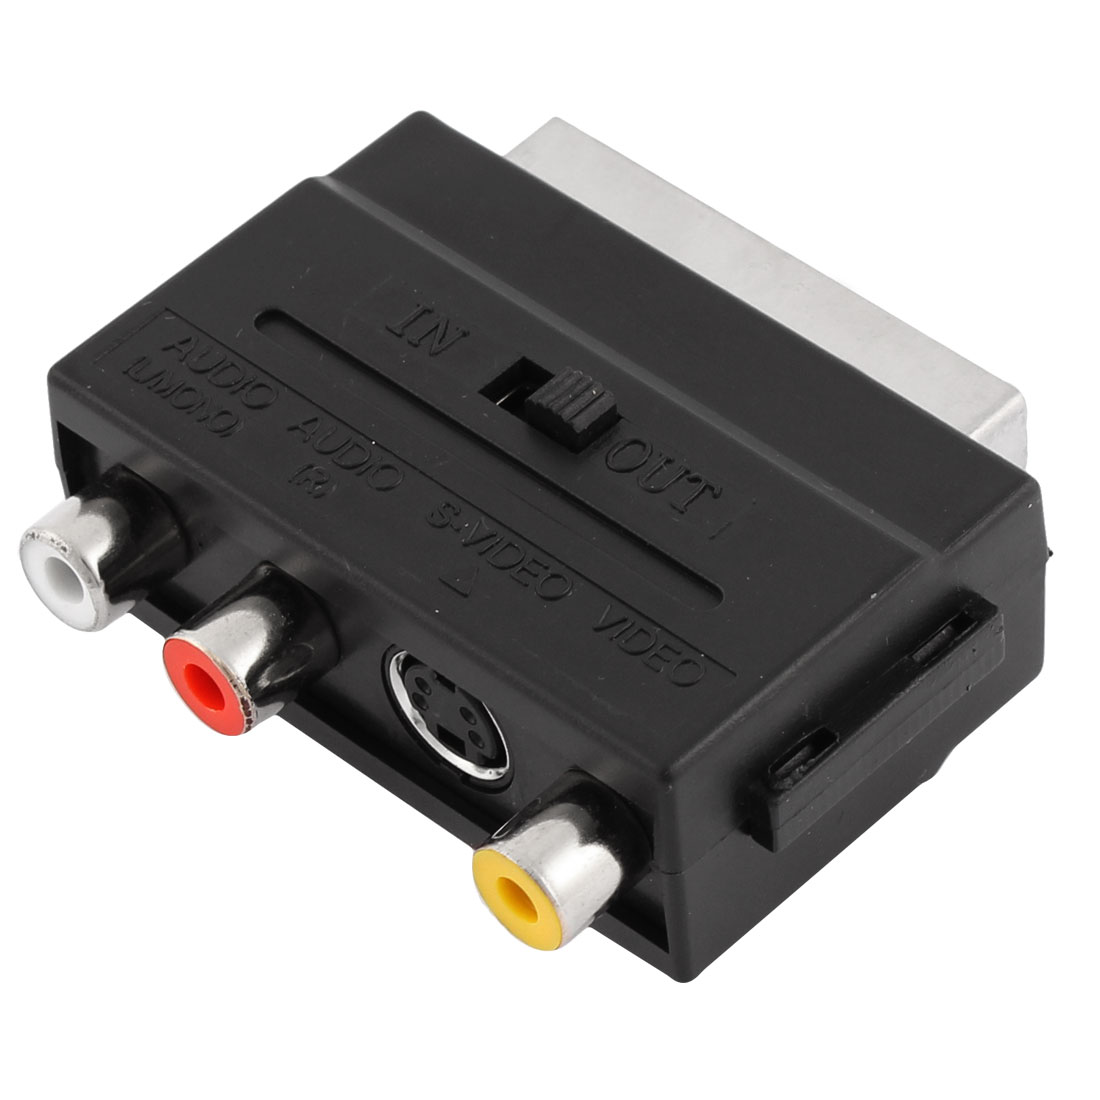 IN-OUT Switch RGB Scart Male to 3 RCA S-VHS Female Adapter Connector